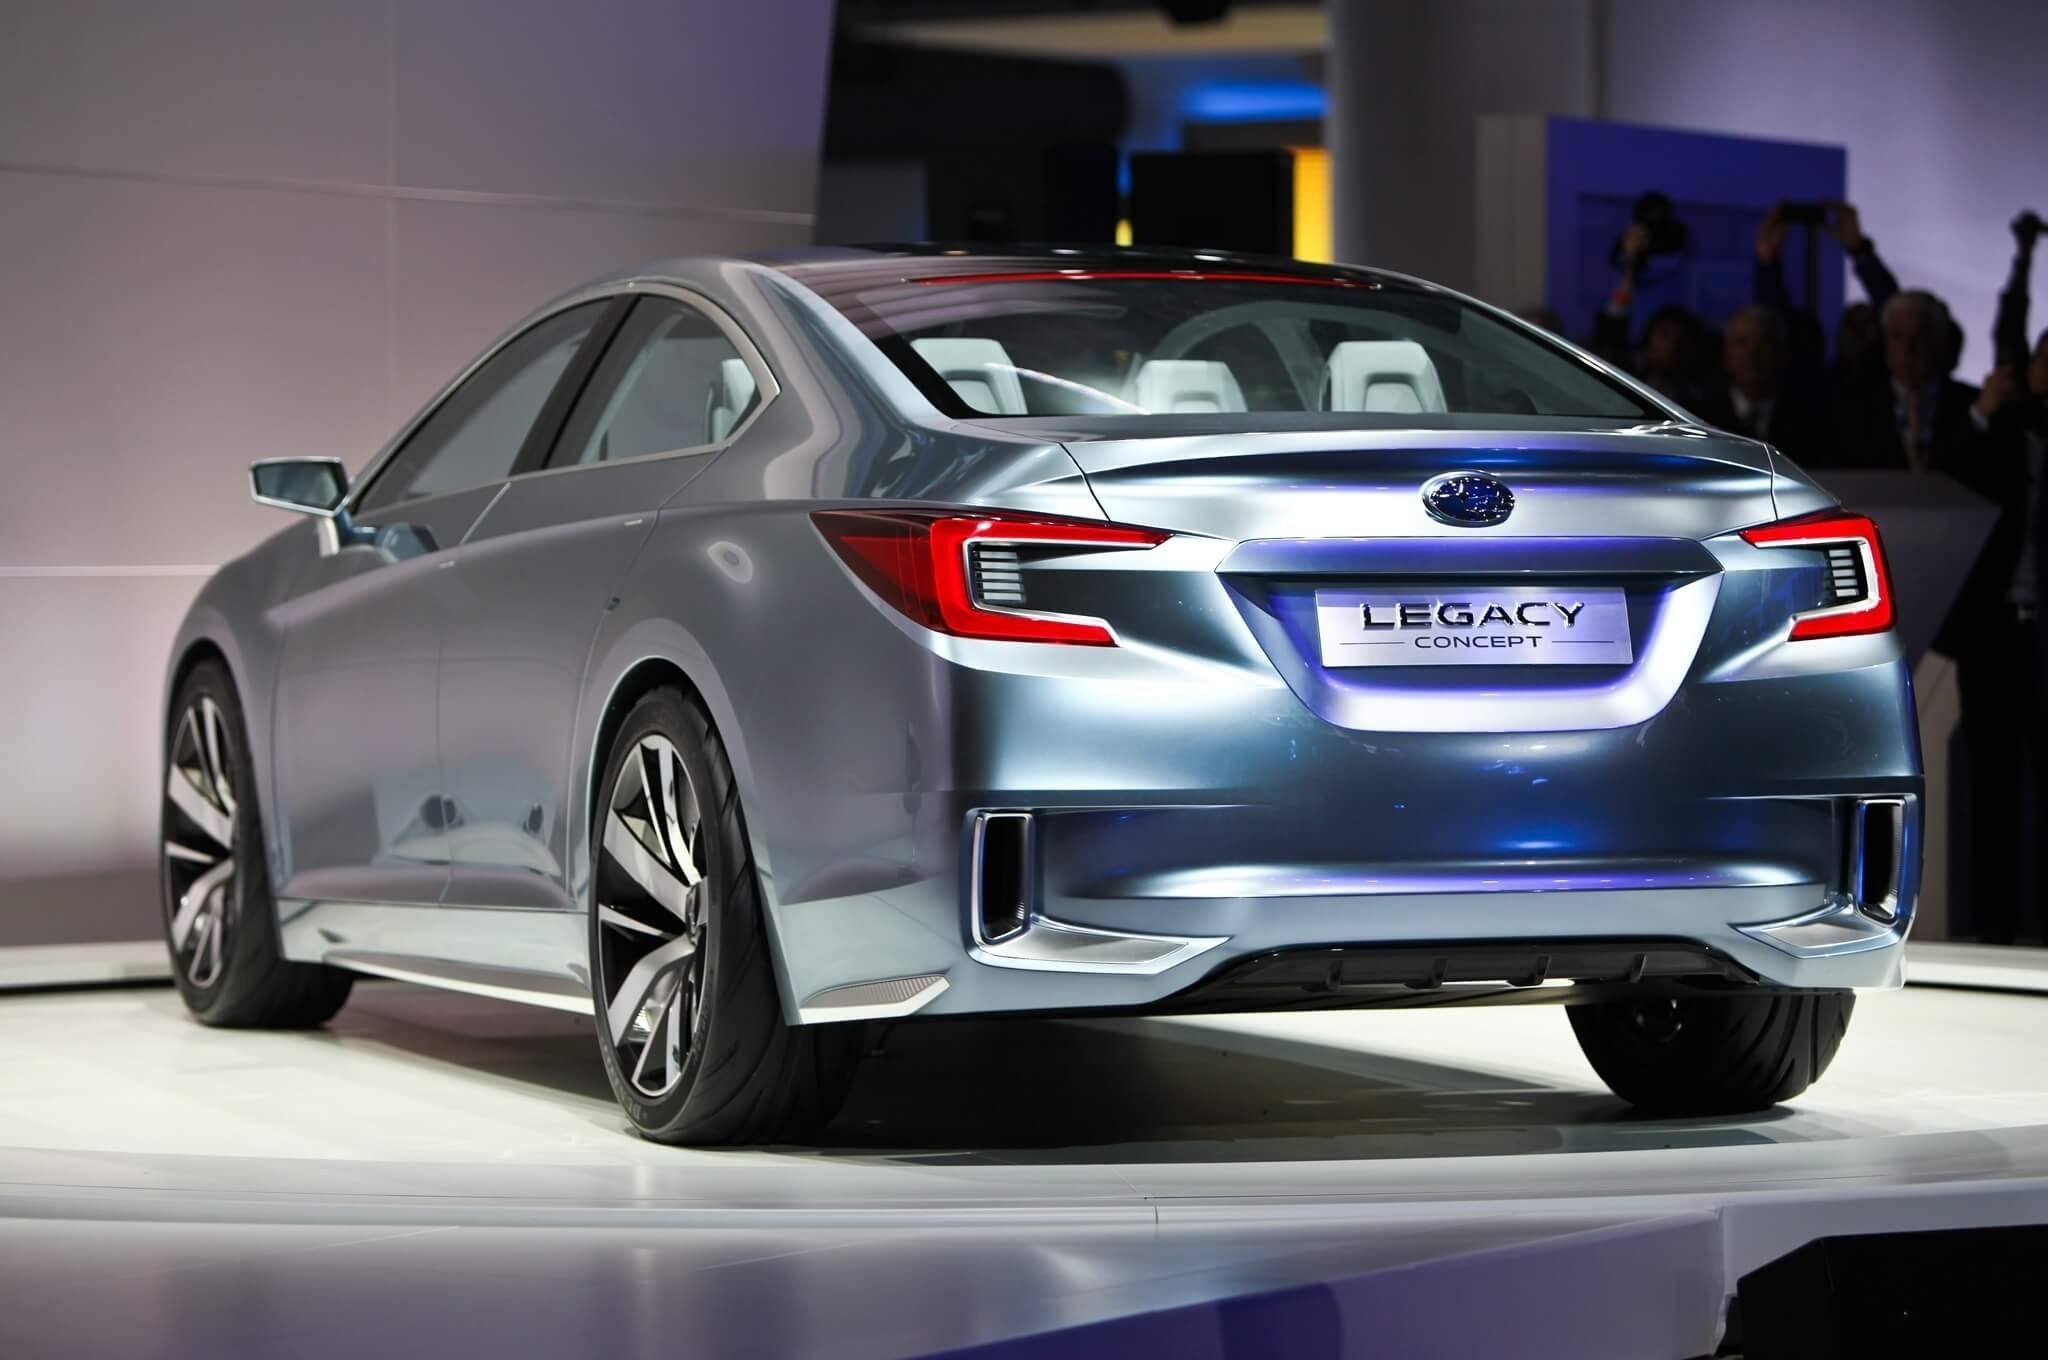 49 The Best 2019 Subaru Legacy Turbo Gt Specs and Review